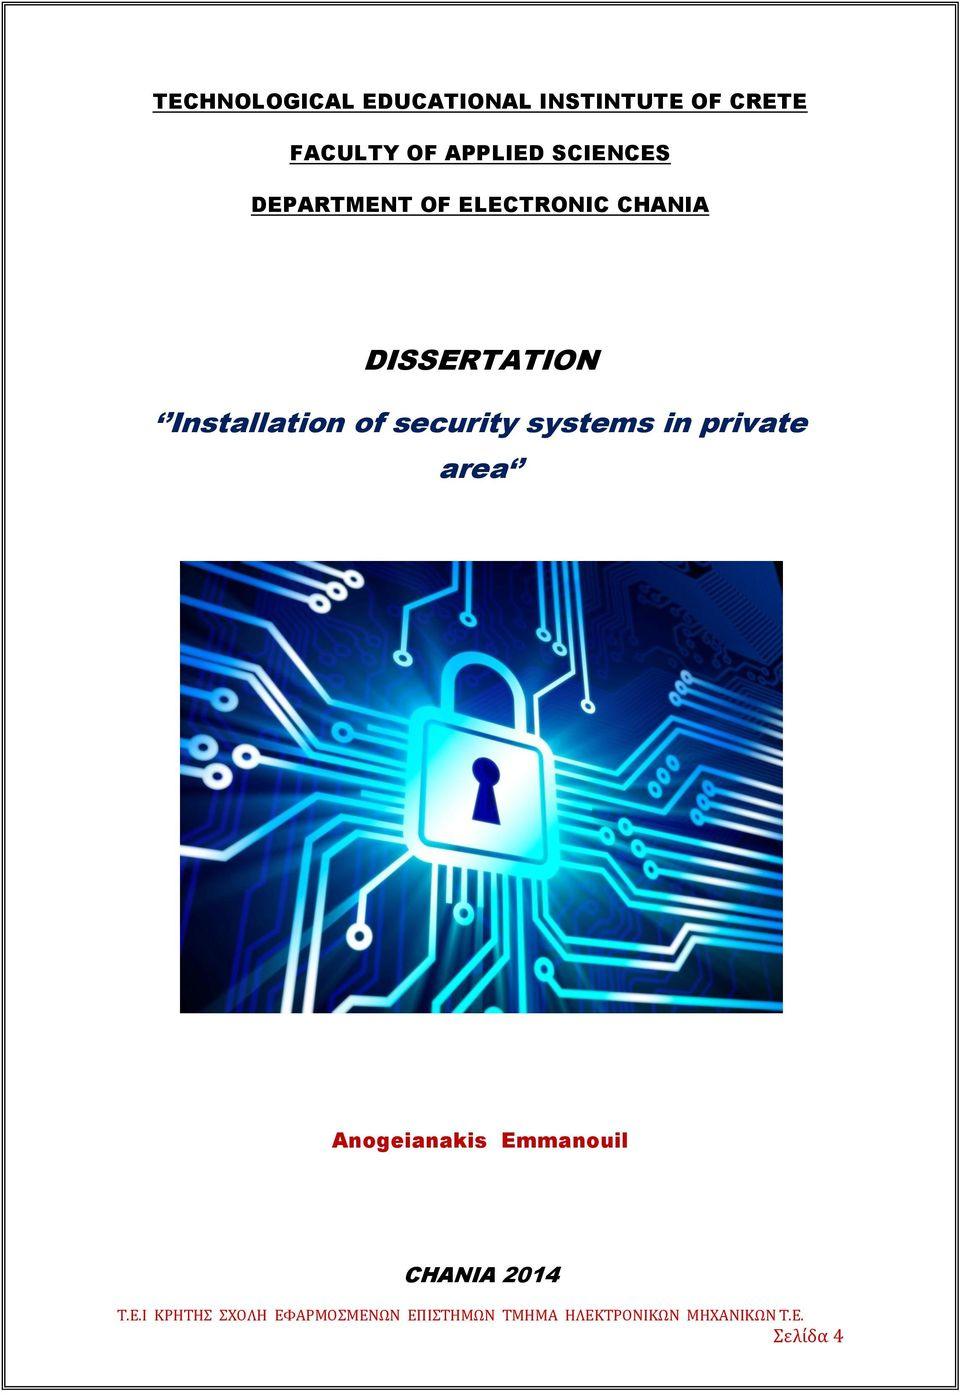 CHANIA DISSERTATION Installation of security systems